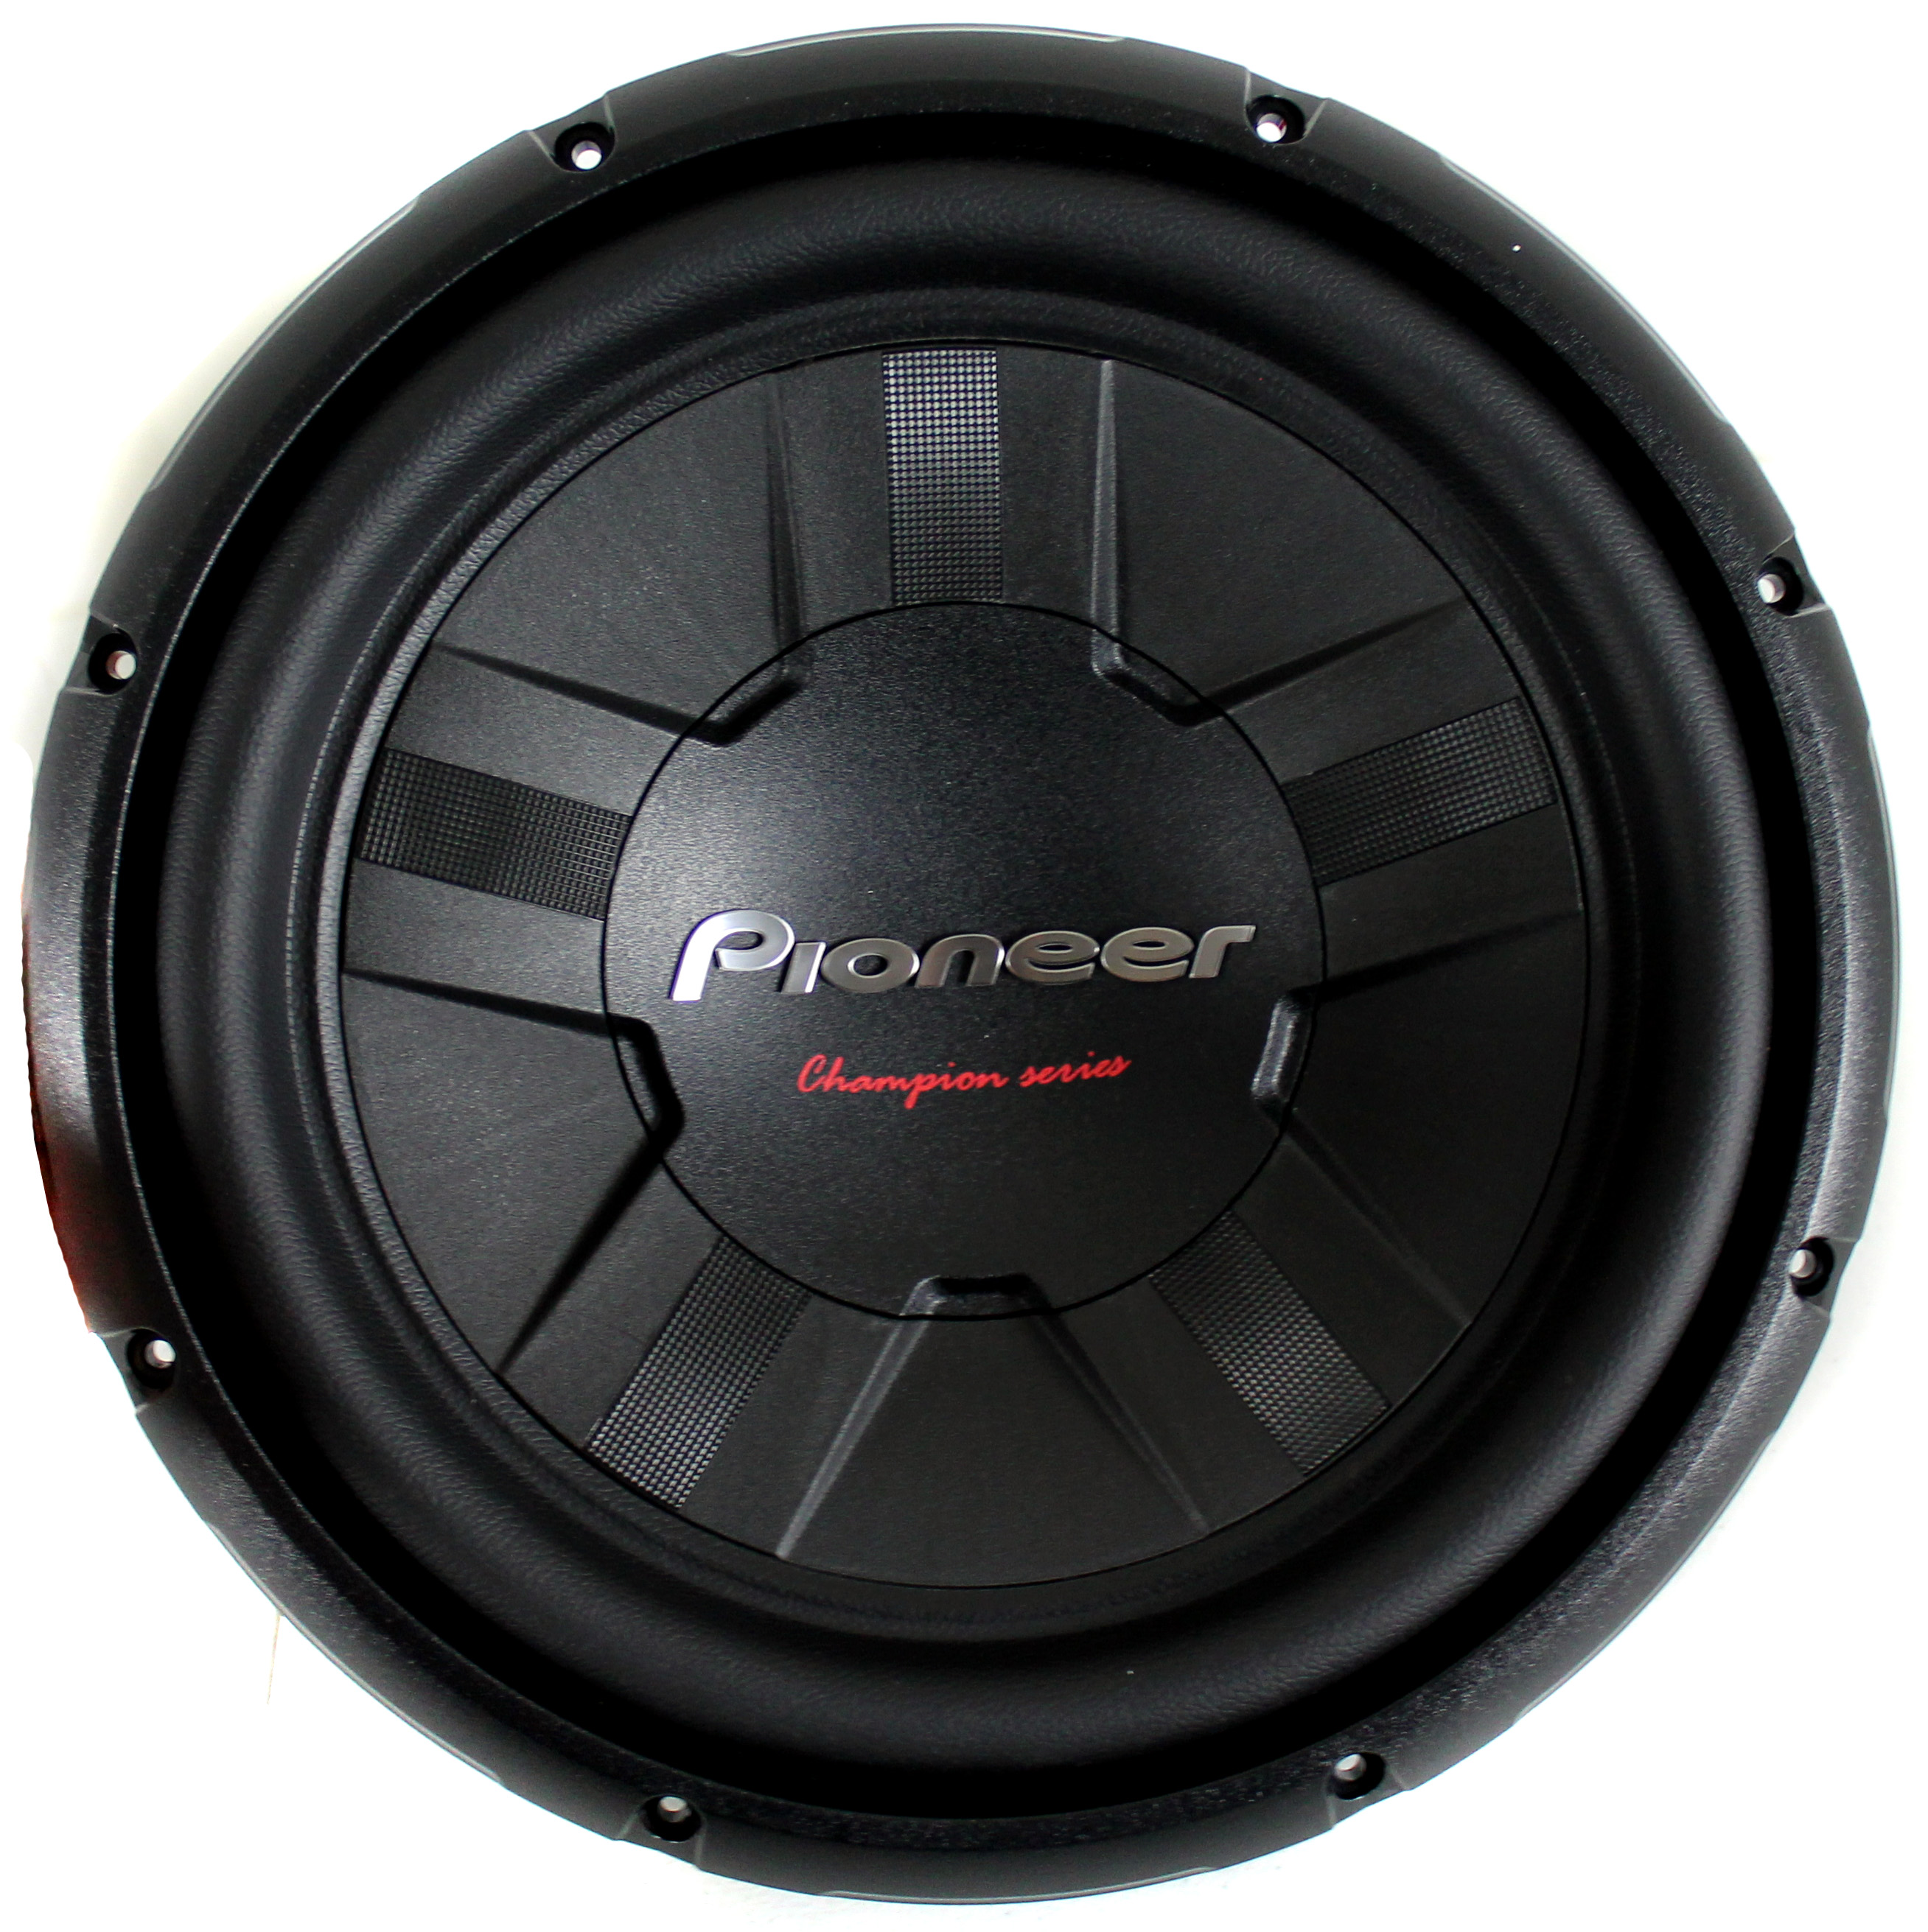 car speakers and subwoofers. pioneer 12 inch 1400 watt subwoofer car audio power 4-ohm dvc sub | ts speakers and subwoofers